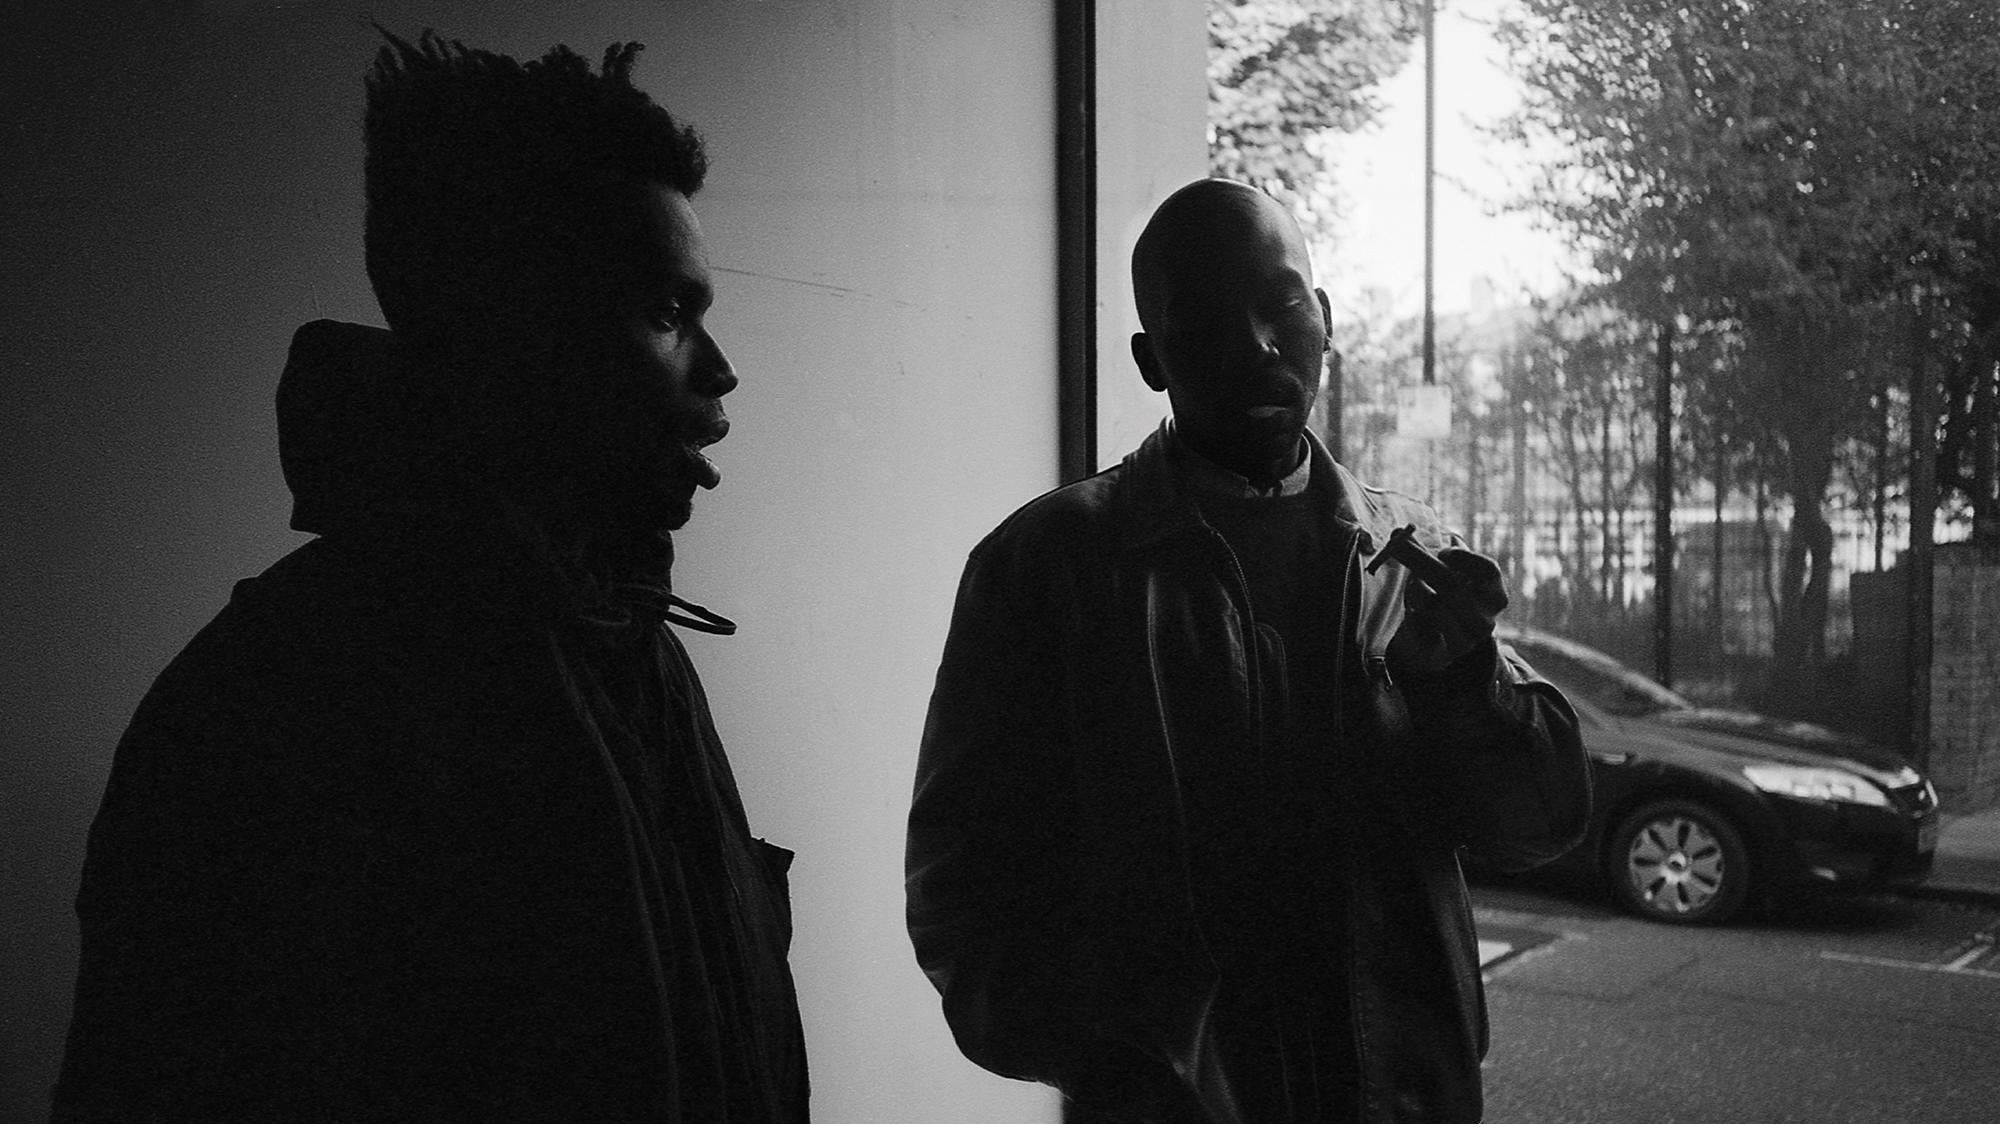 Dean Blunt Discusses Racial Discrimination and the Death of London, in a Rare Interview With Gaika